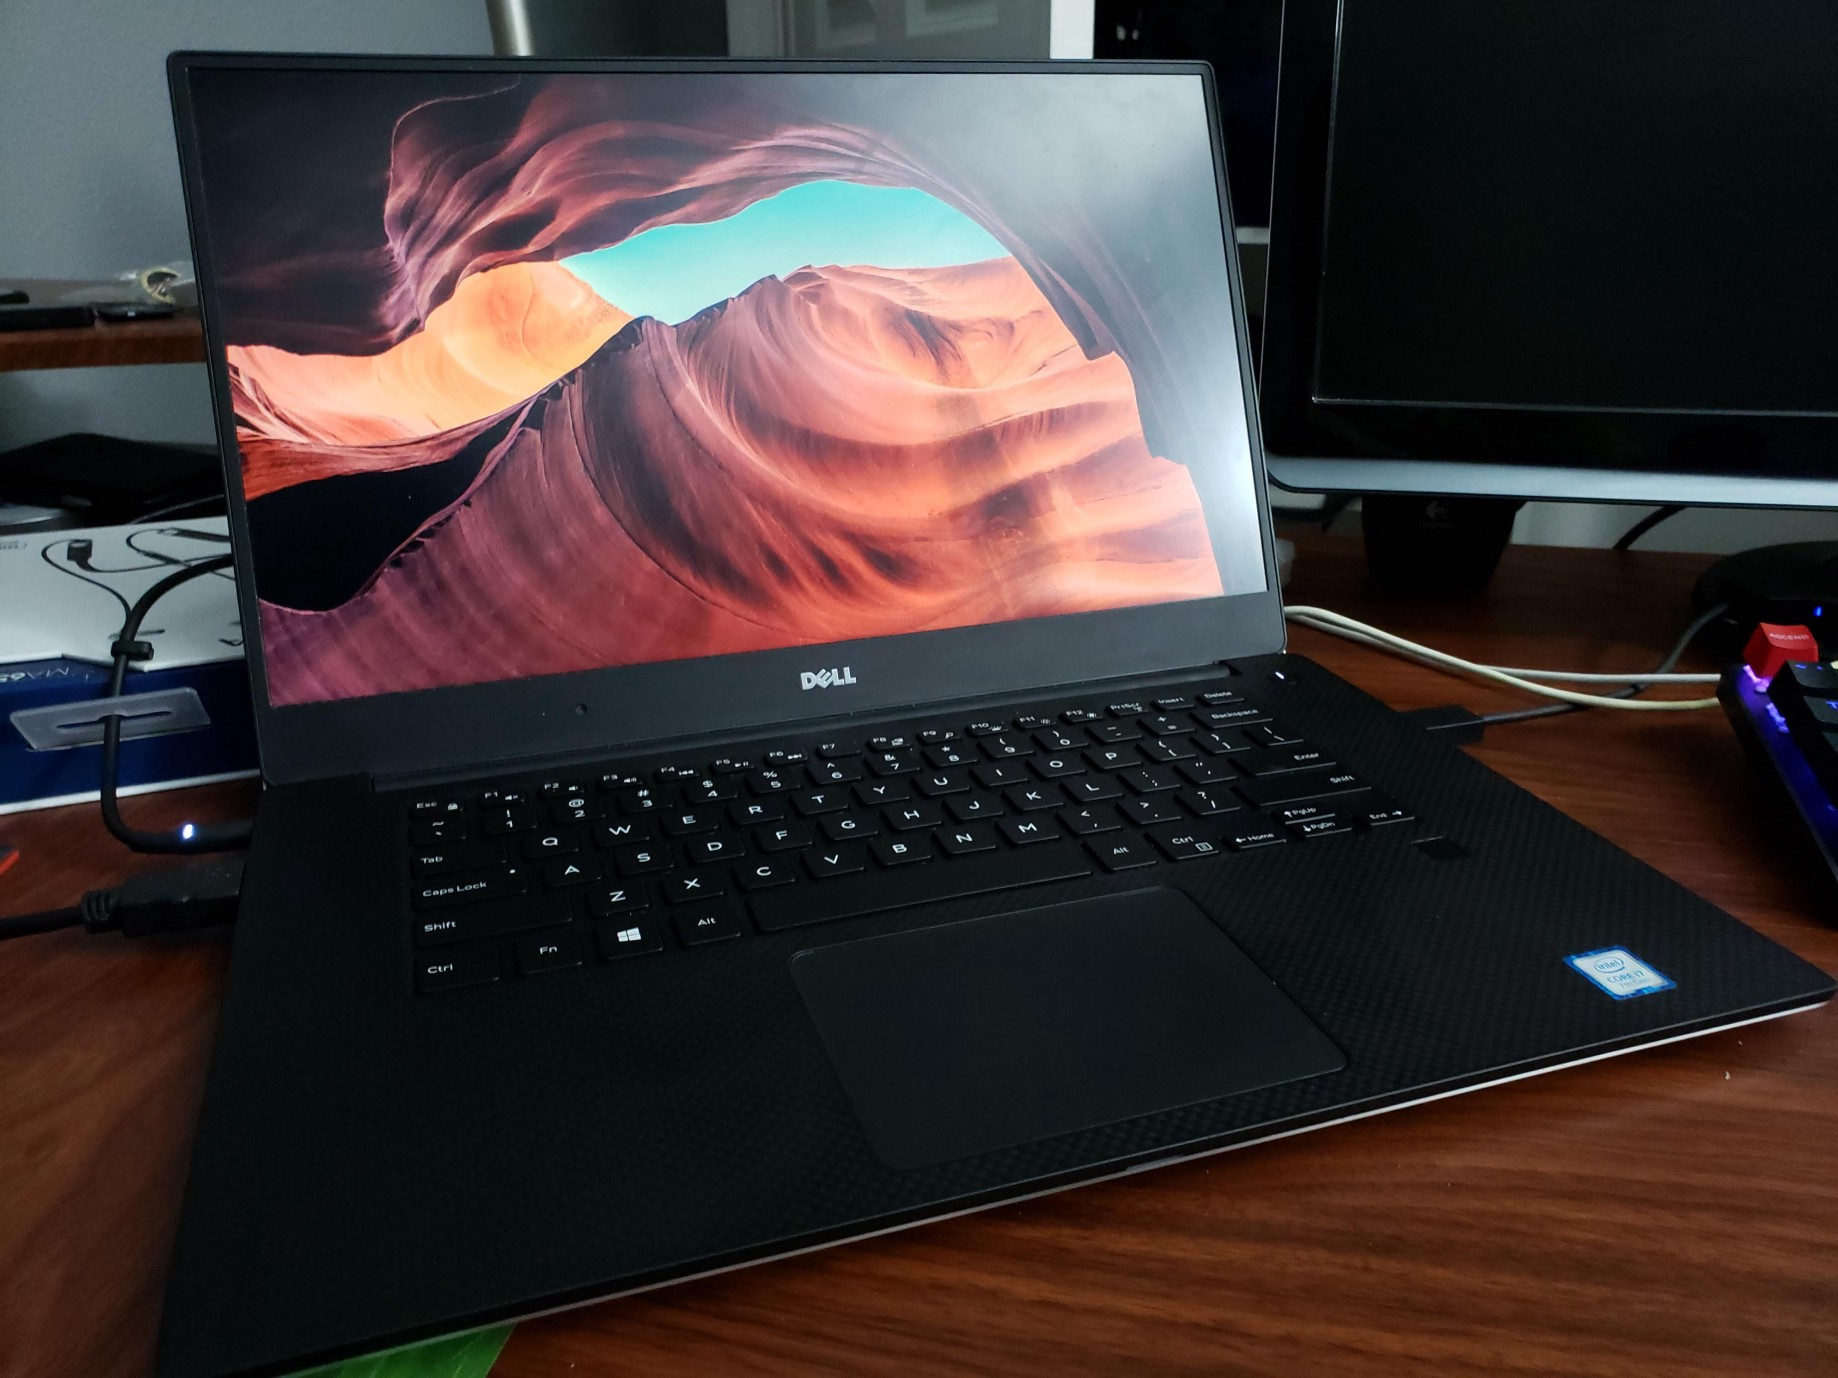 Dell xps 15 linux